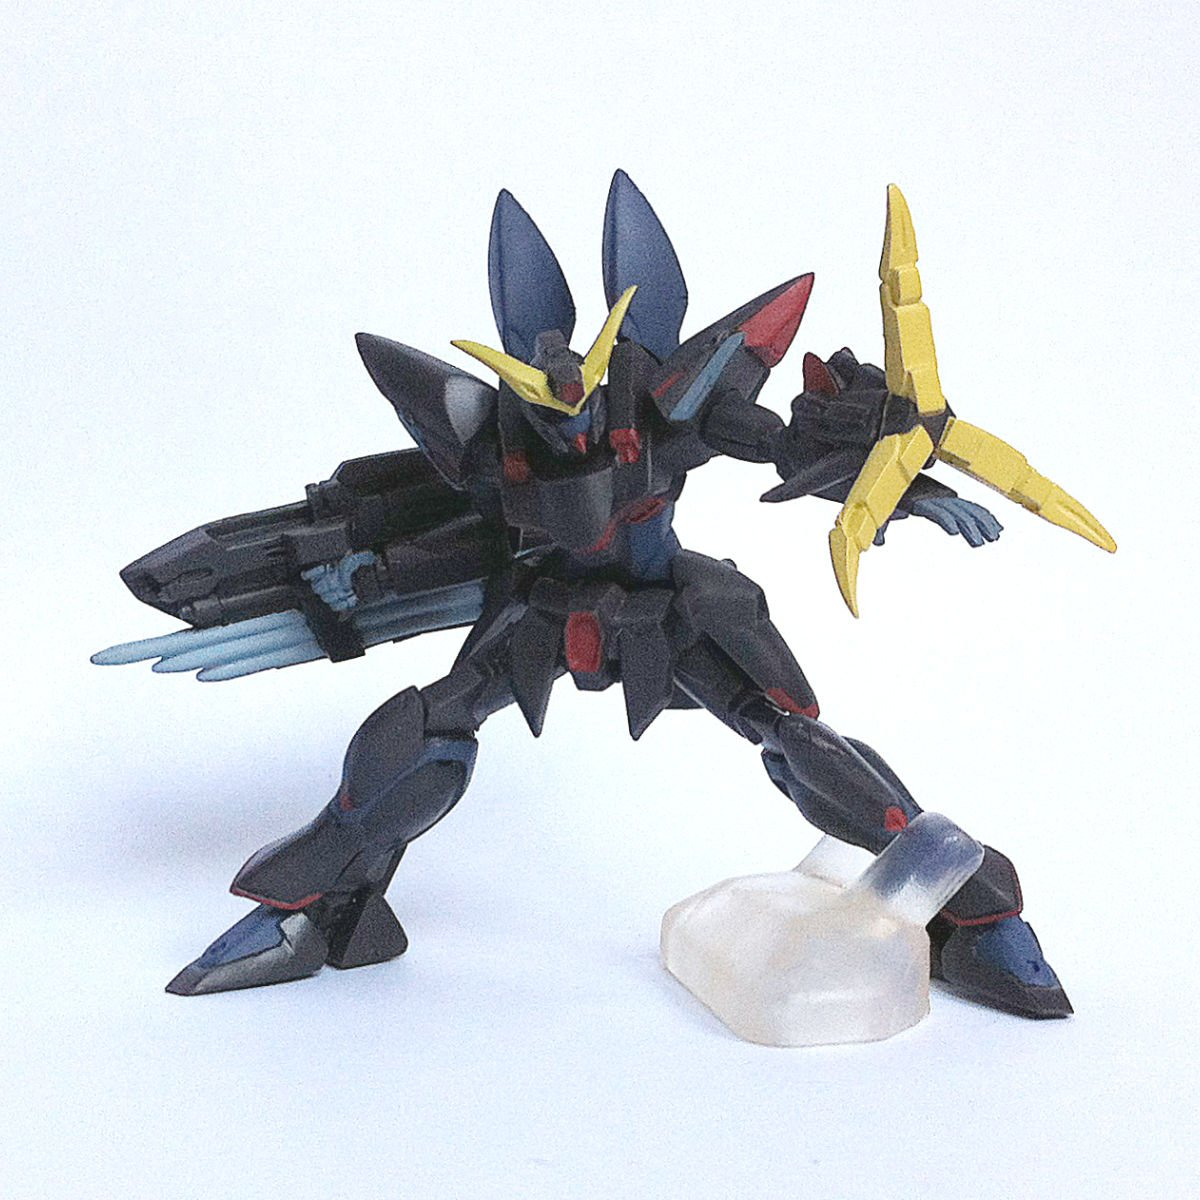 GAT-X207 Blitz Gundam from HG Gundam MS Selection by Bandai